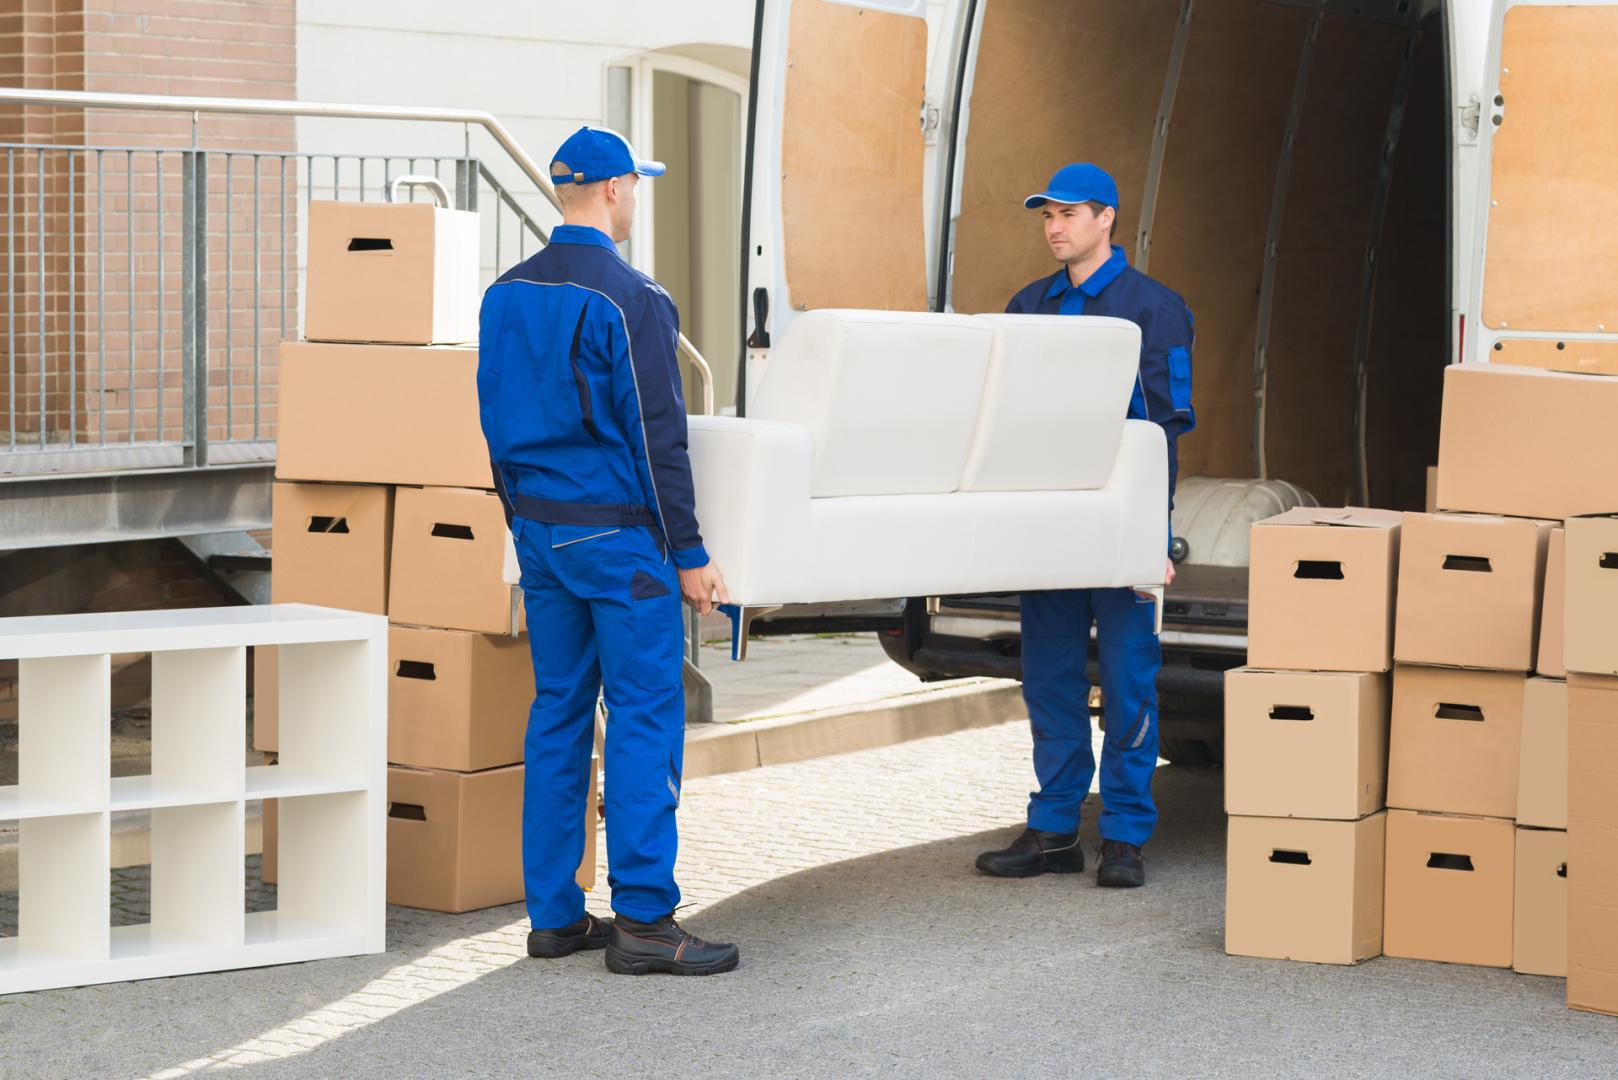 Premier furniture freight and removal business in Australia